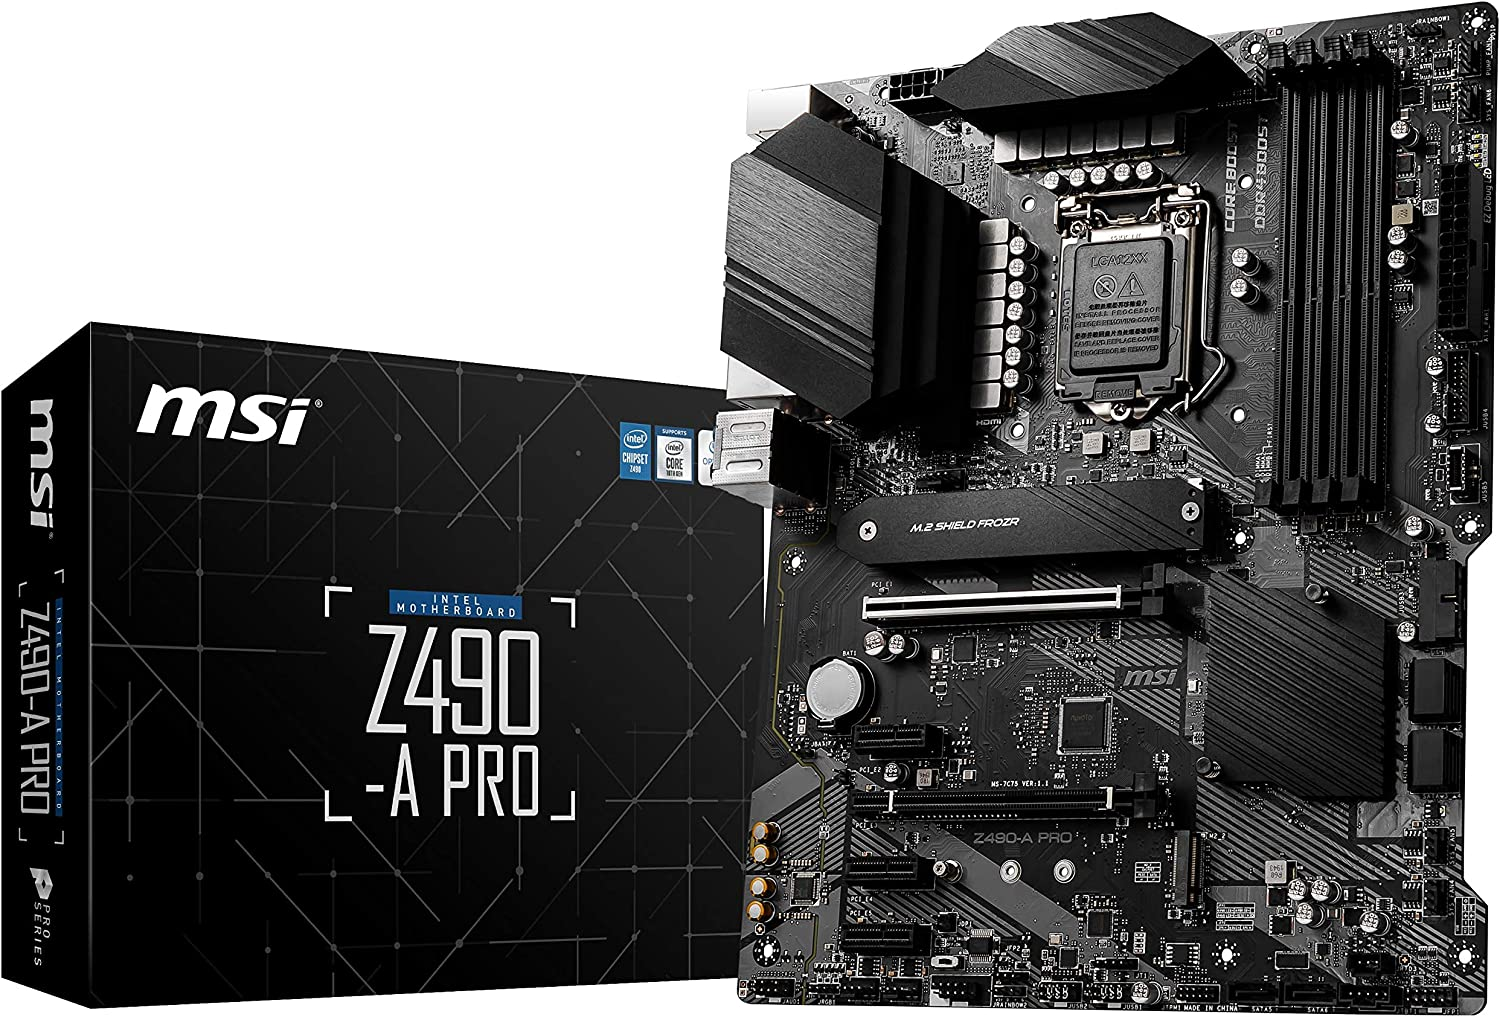 915enQg0e1L. AC SL1500 Best Motherboard for Streaming - Top 9 Great Products in [year]